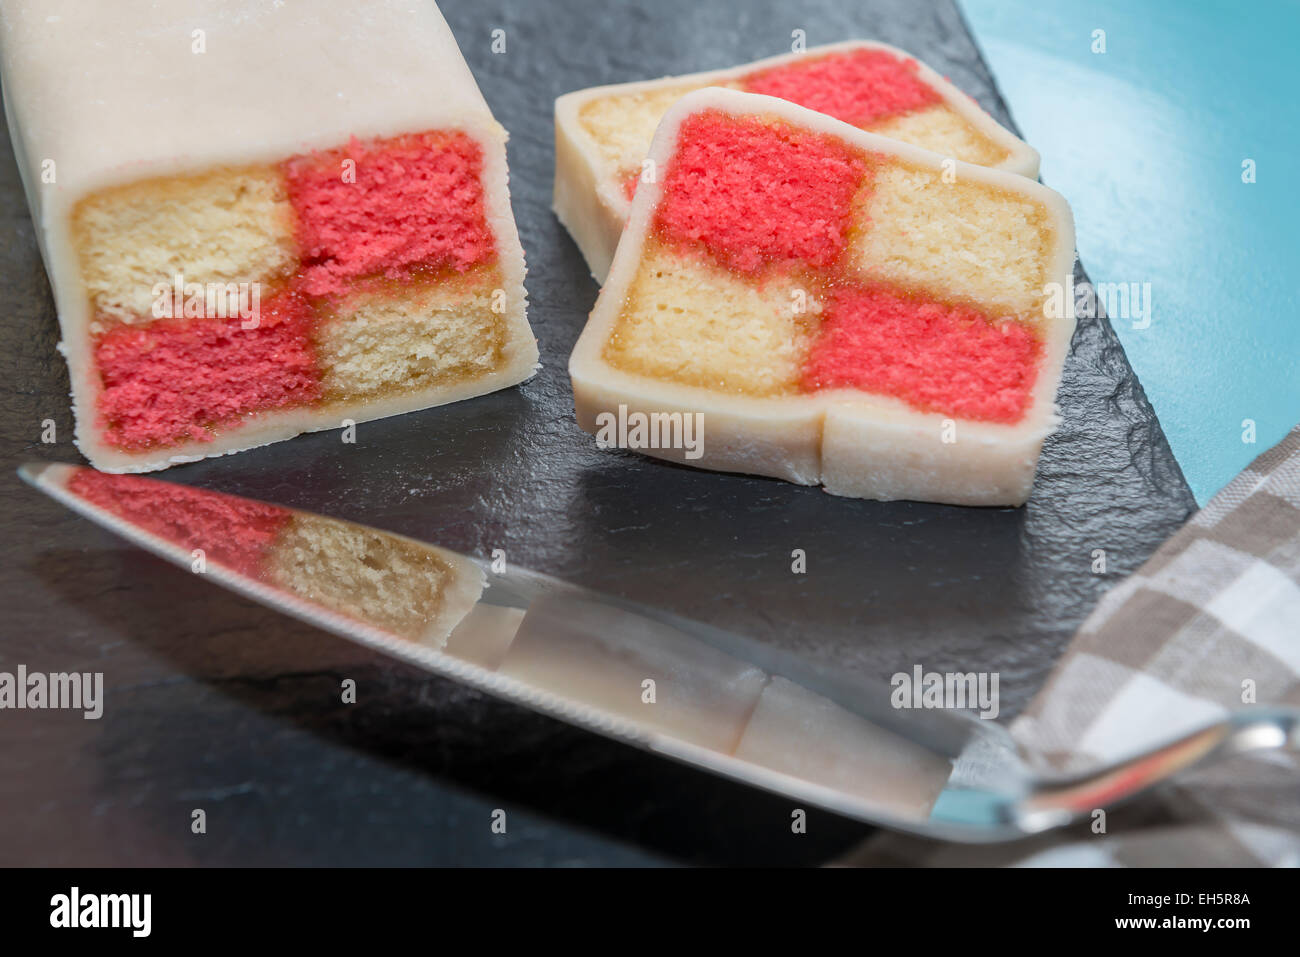 Closeup of a Battenberg cake reflected in a cake slice in the foreground - Stock Image